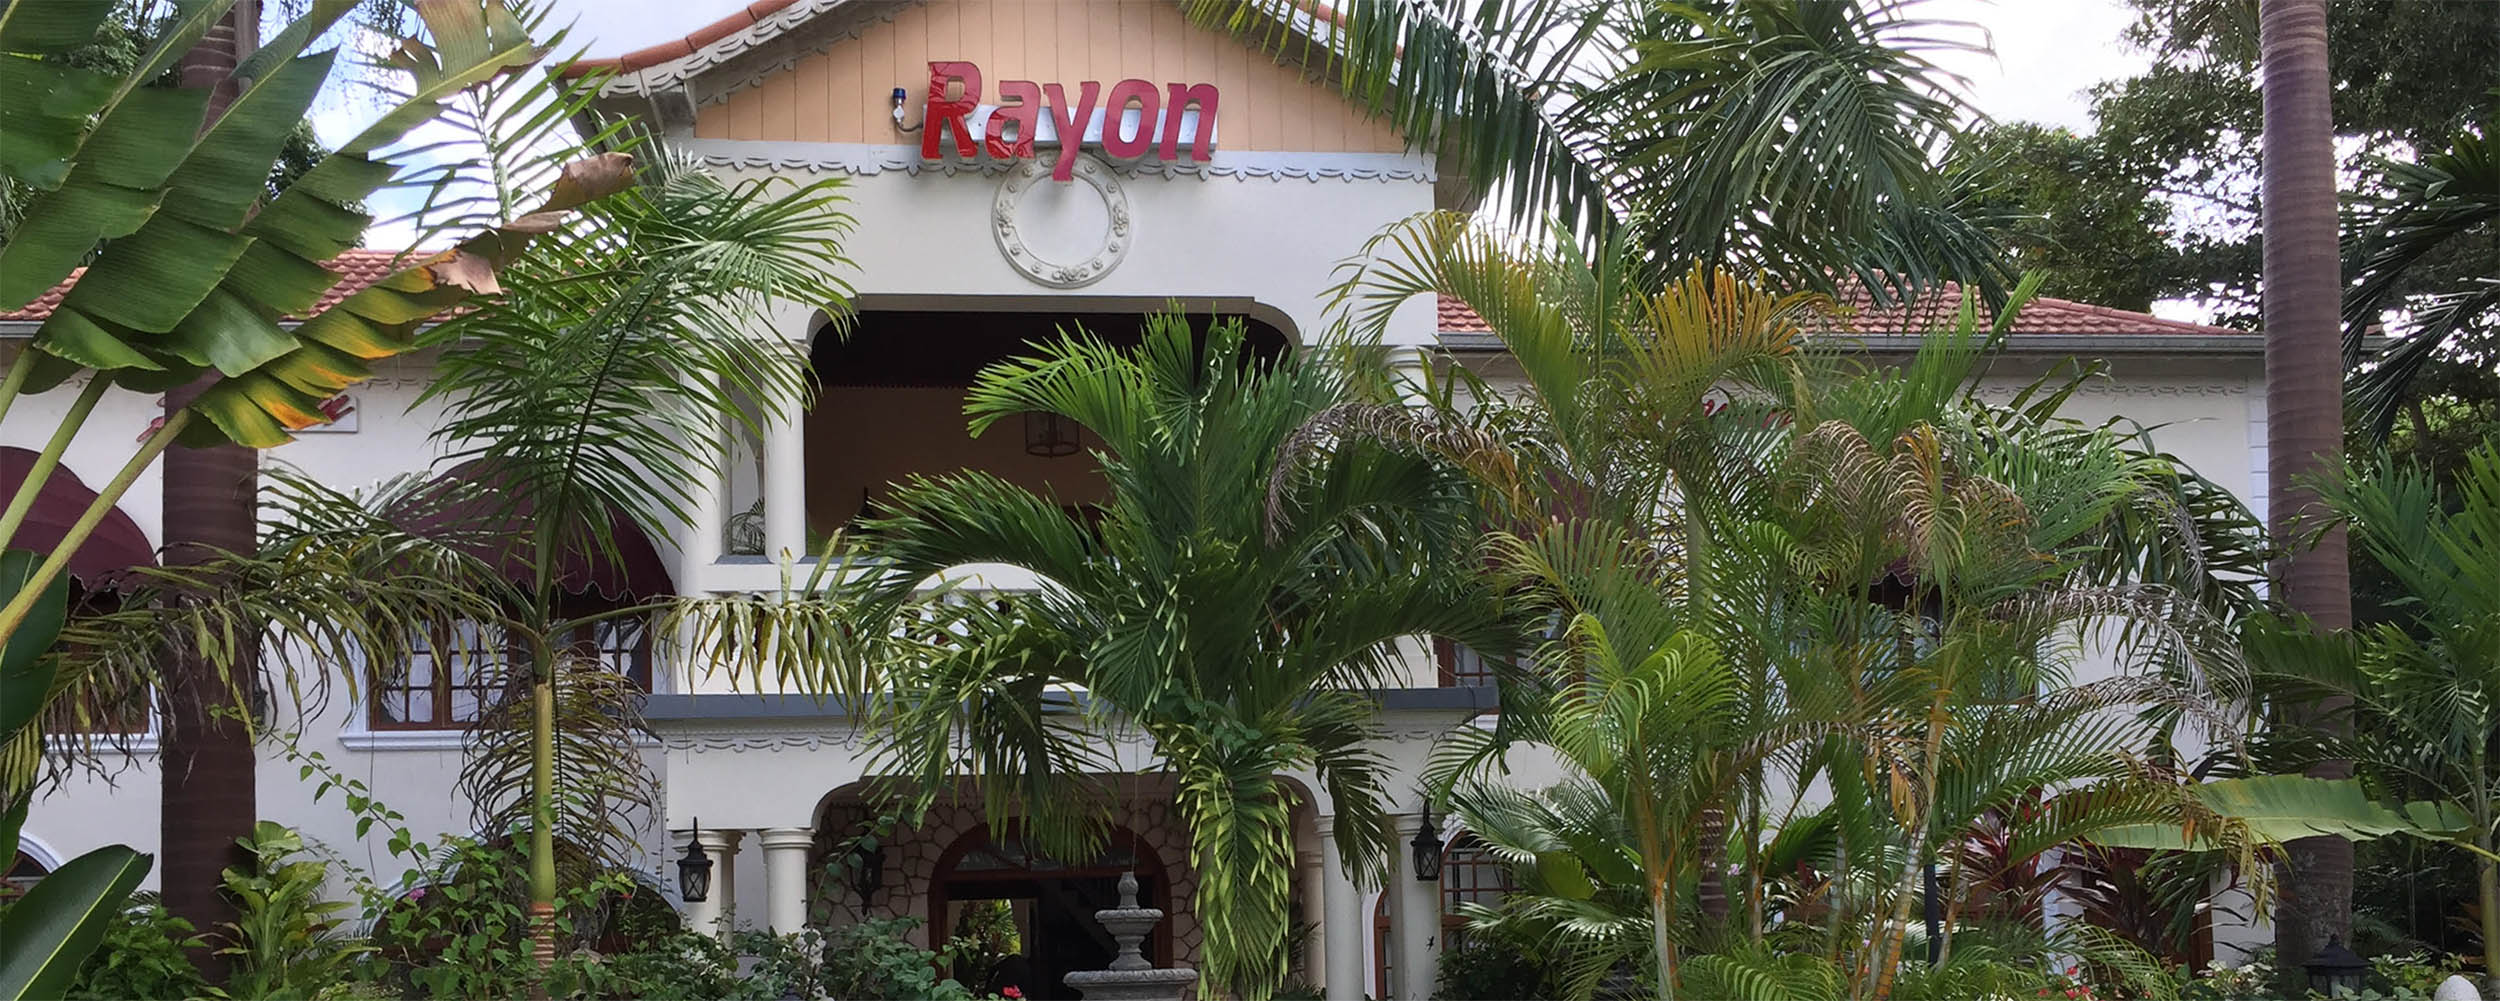 Rayon Hotel - Negril Jamaica